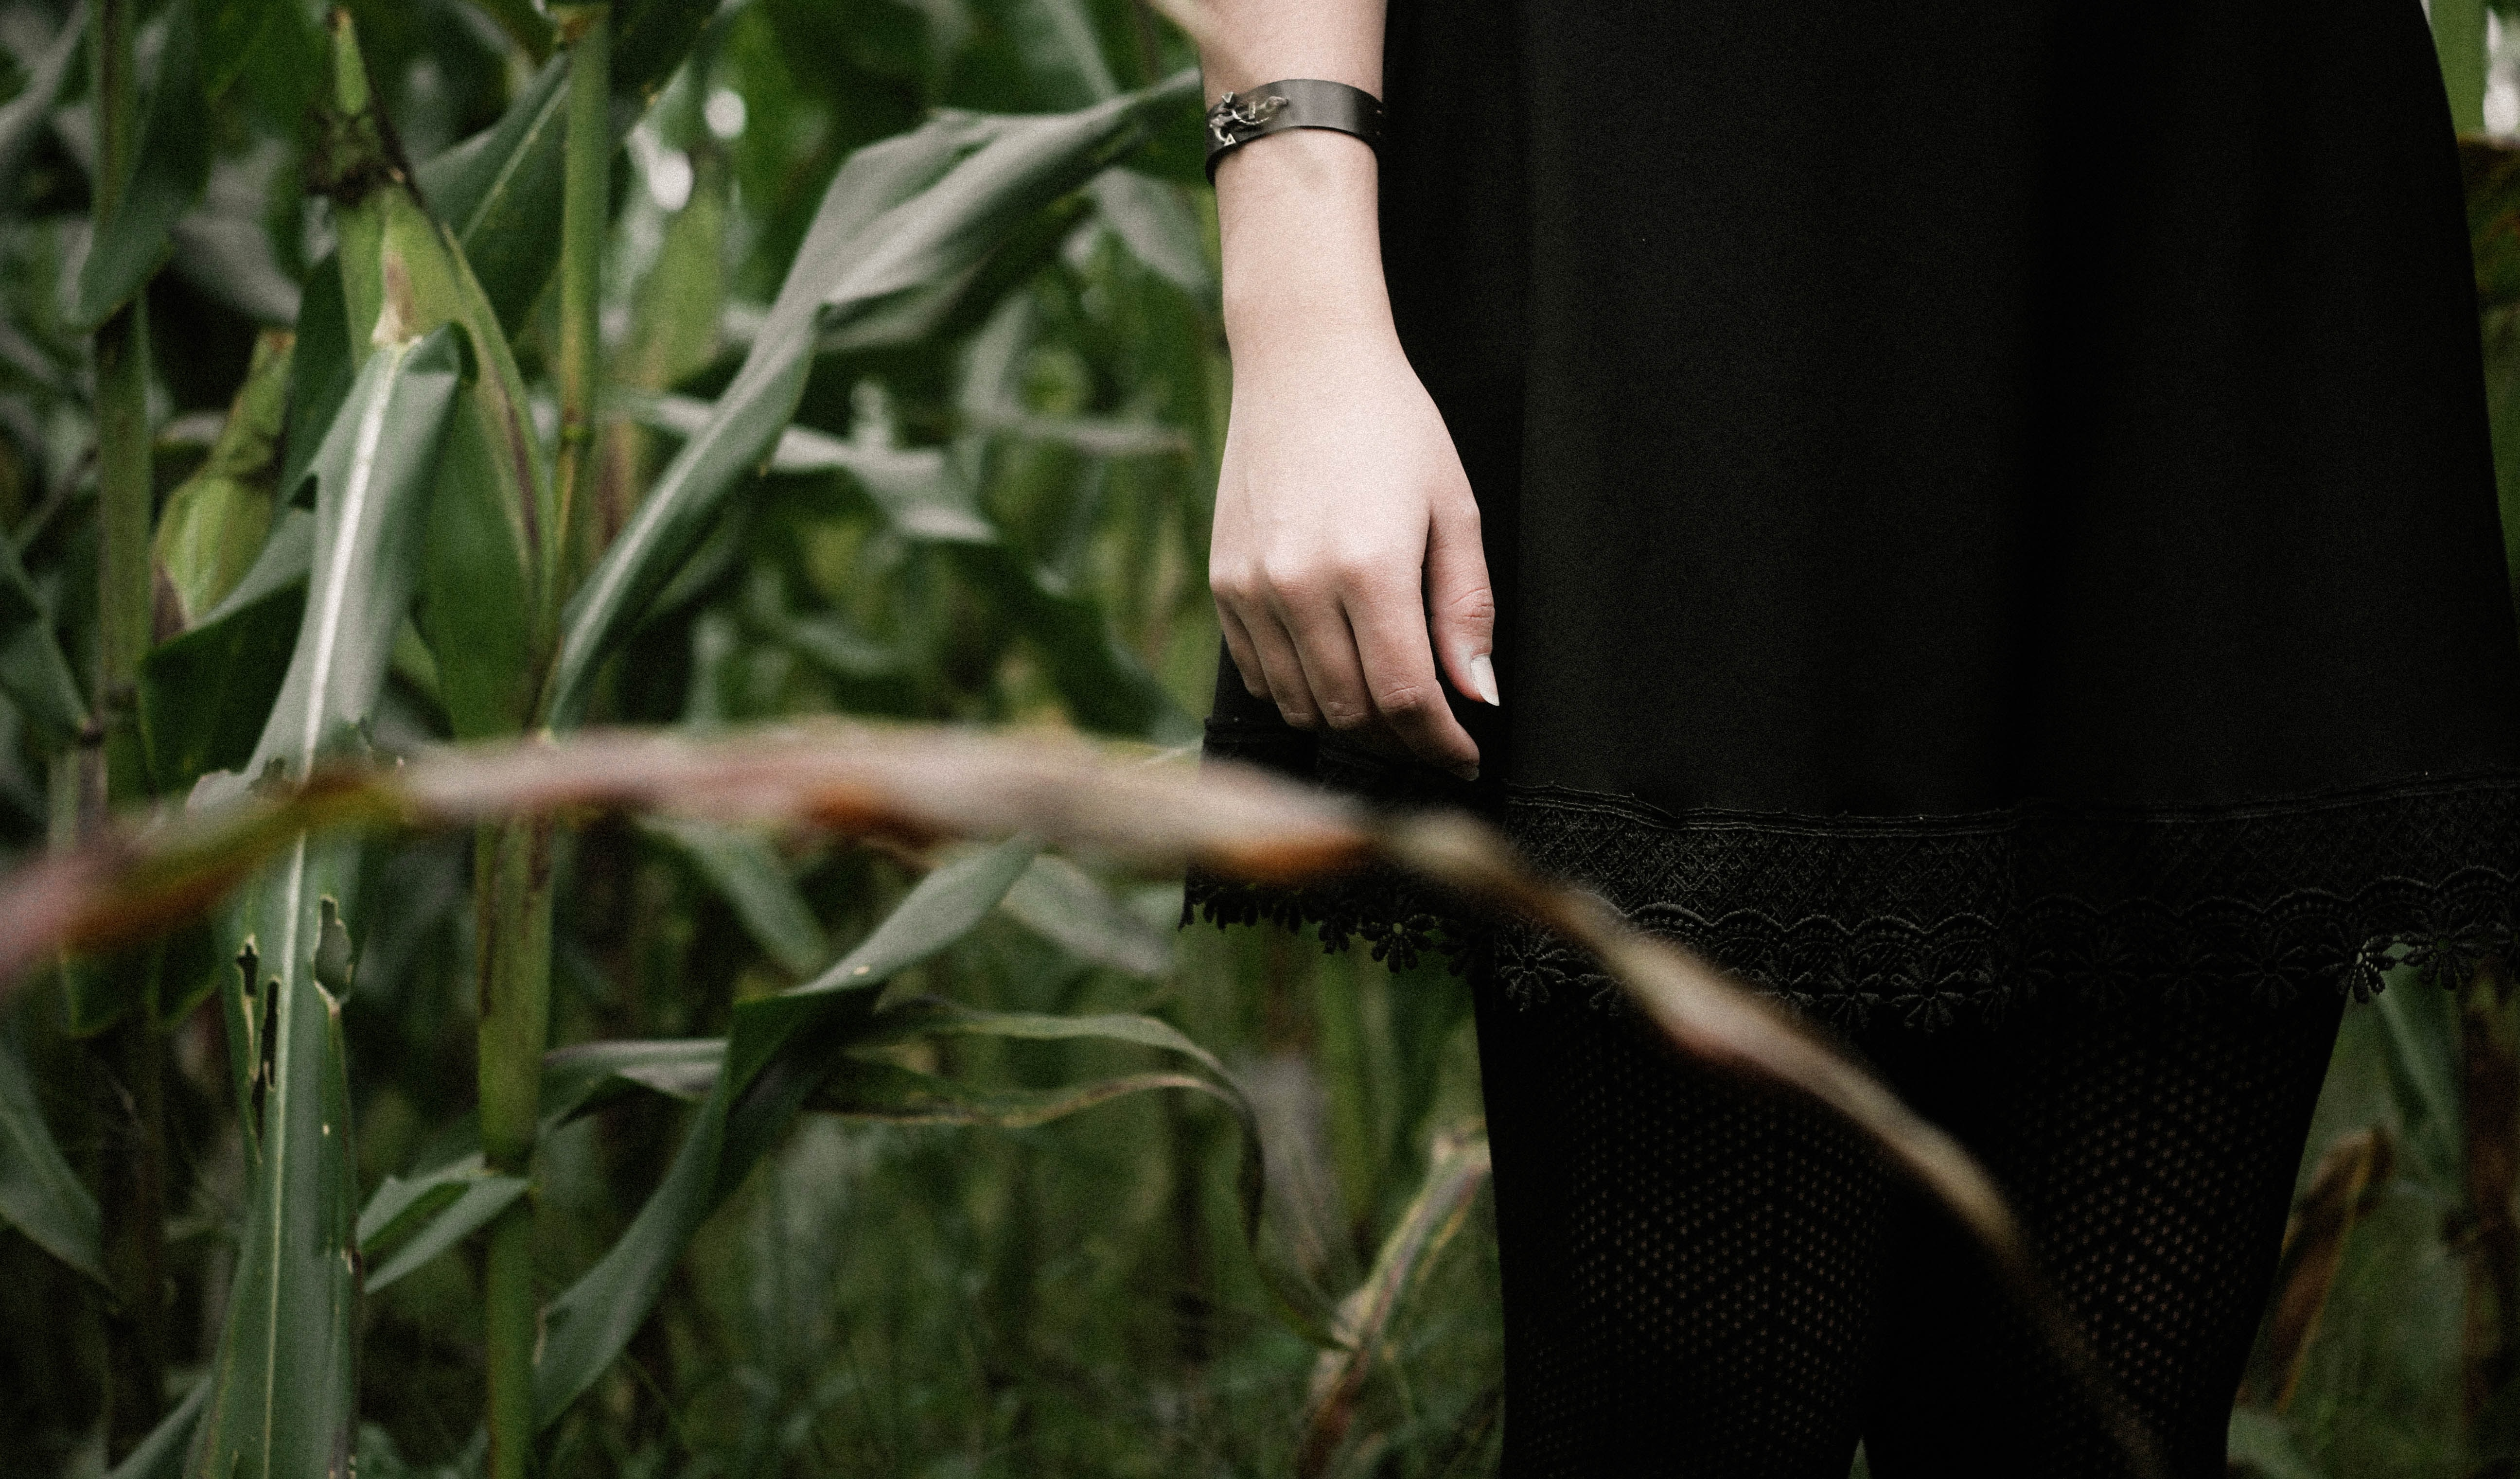 A low shot of a woman dressed in black standing in a green field